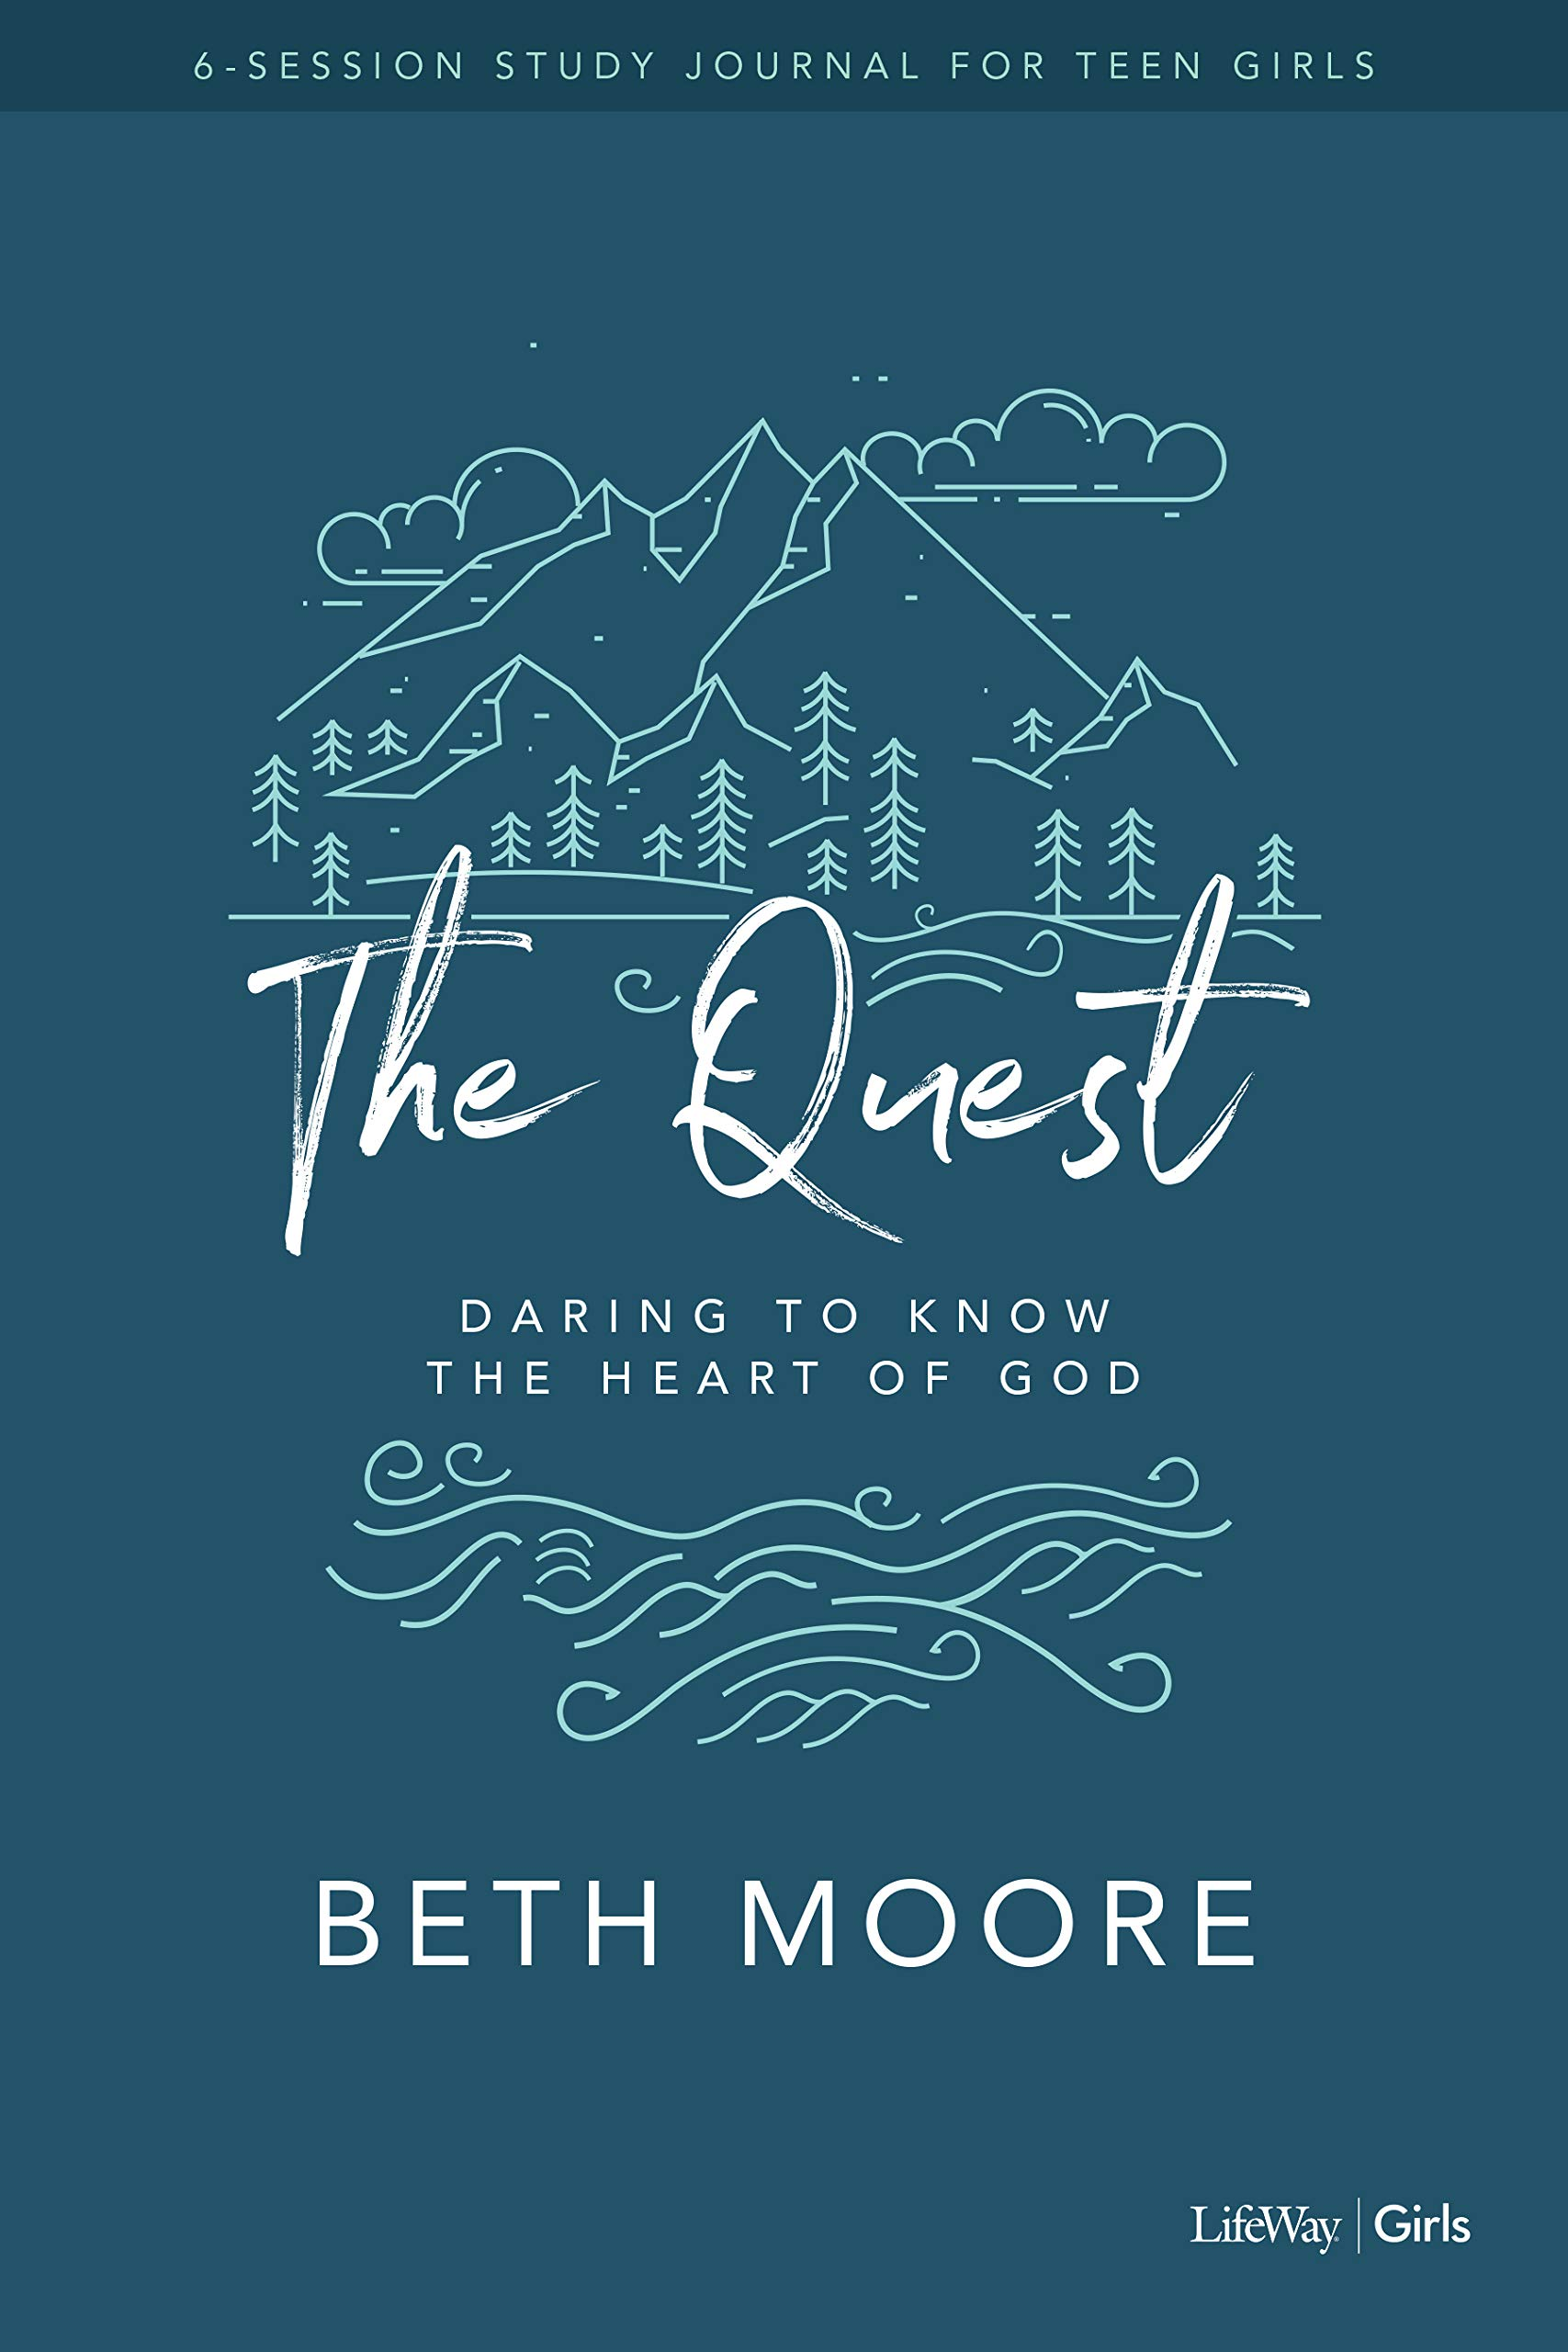 Image OfThe Quest - Study Journal For Teen Girls: Daring To Know The Heart Of God